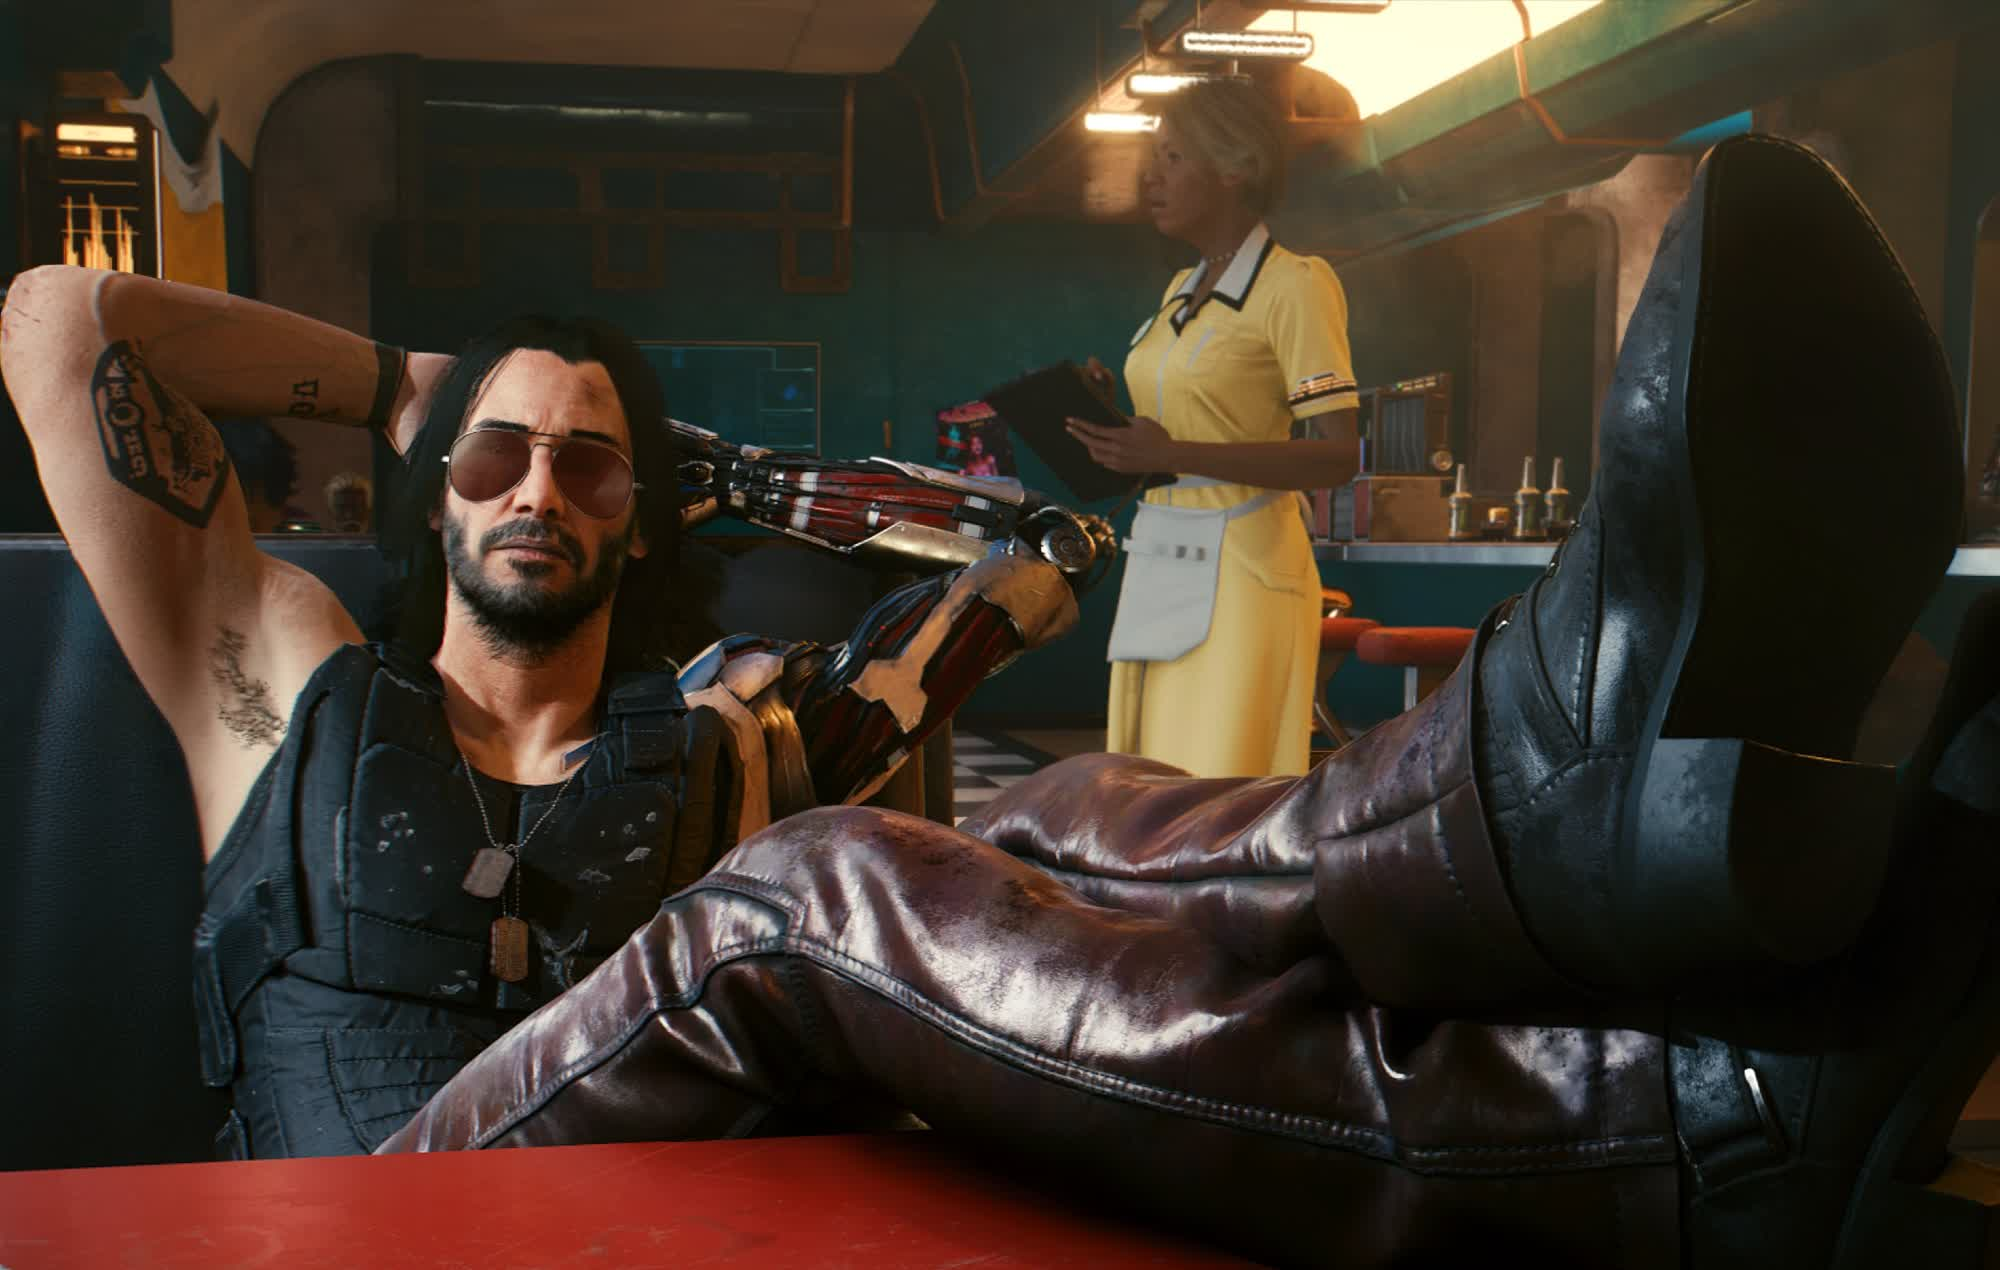 Deal alert: Cyberpunk 2077 is just $10 today at Best Buy